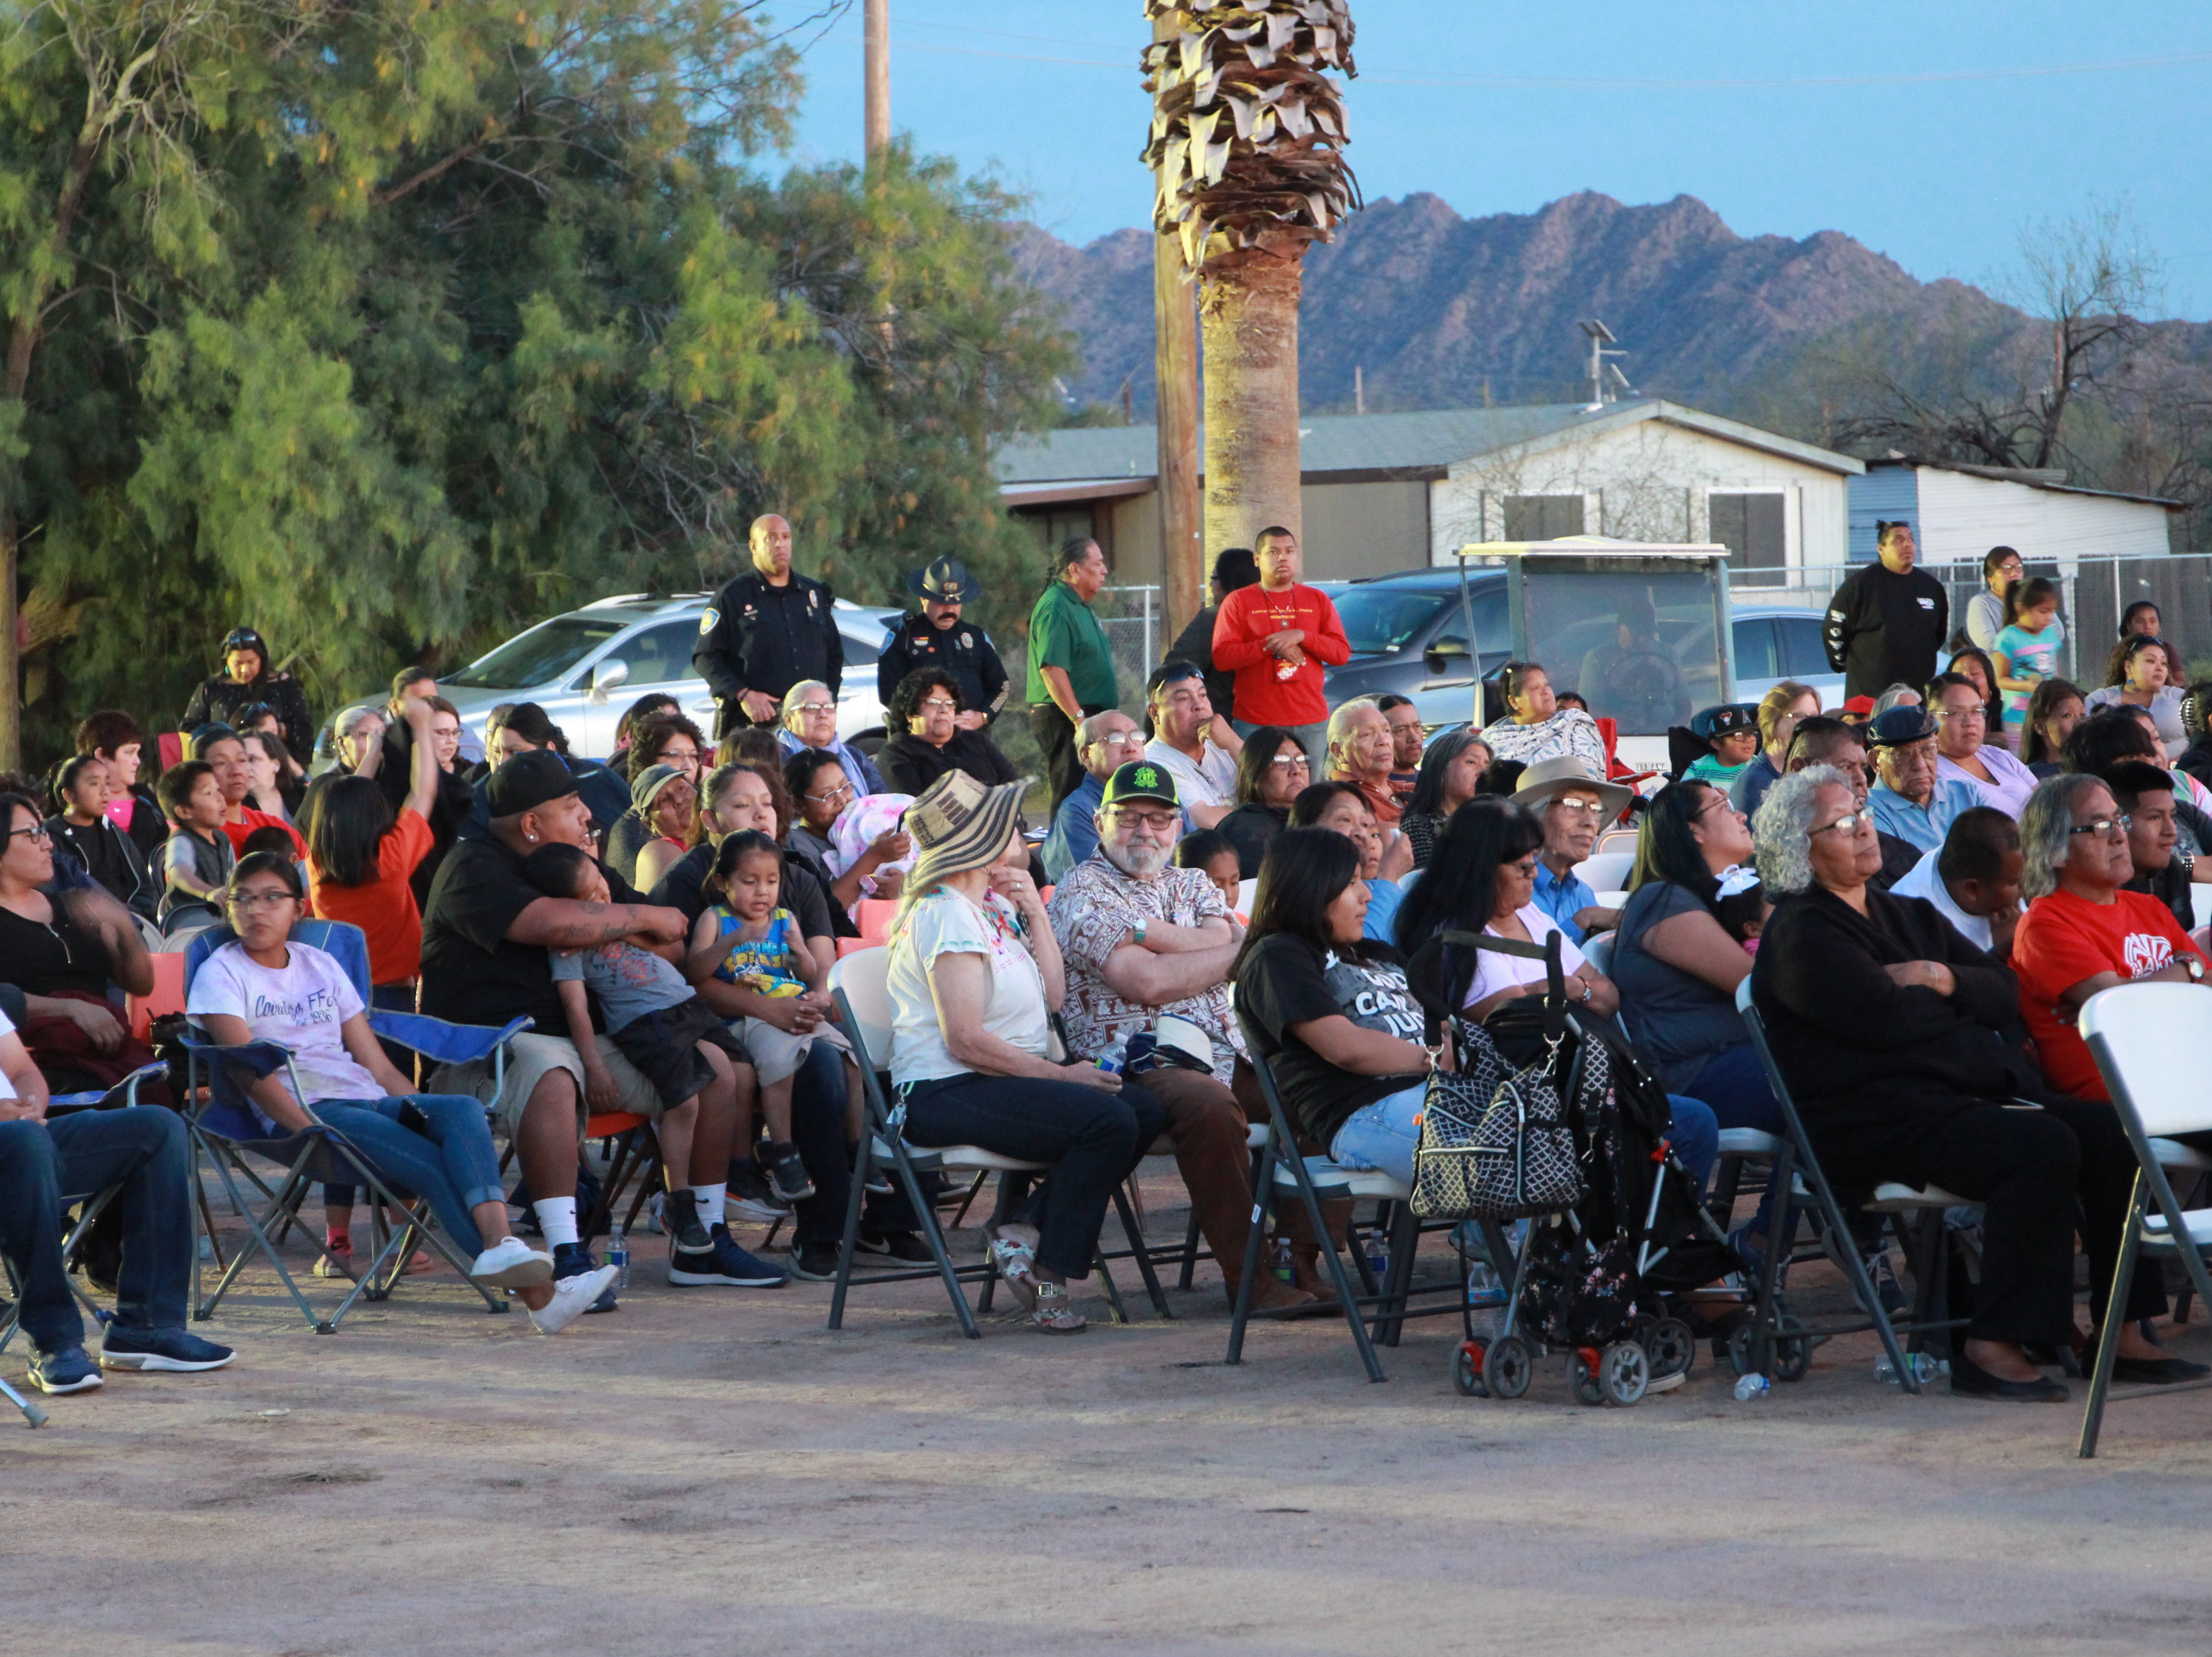 Sitting in the parking lot of the old church, members of the community prayed and remembered the old church.